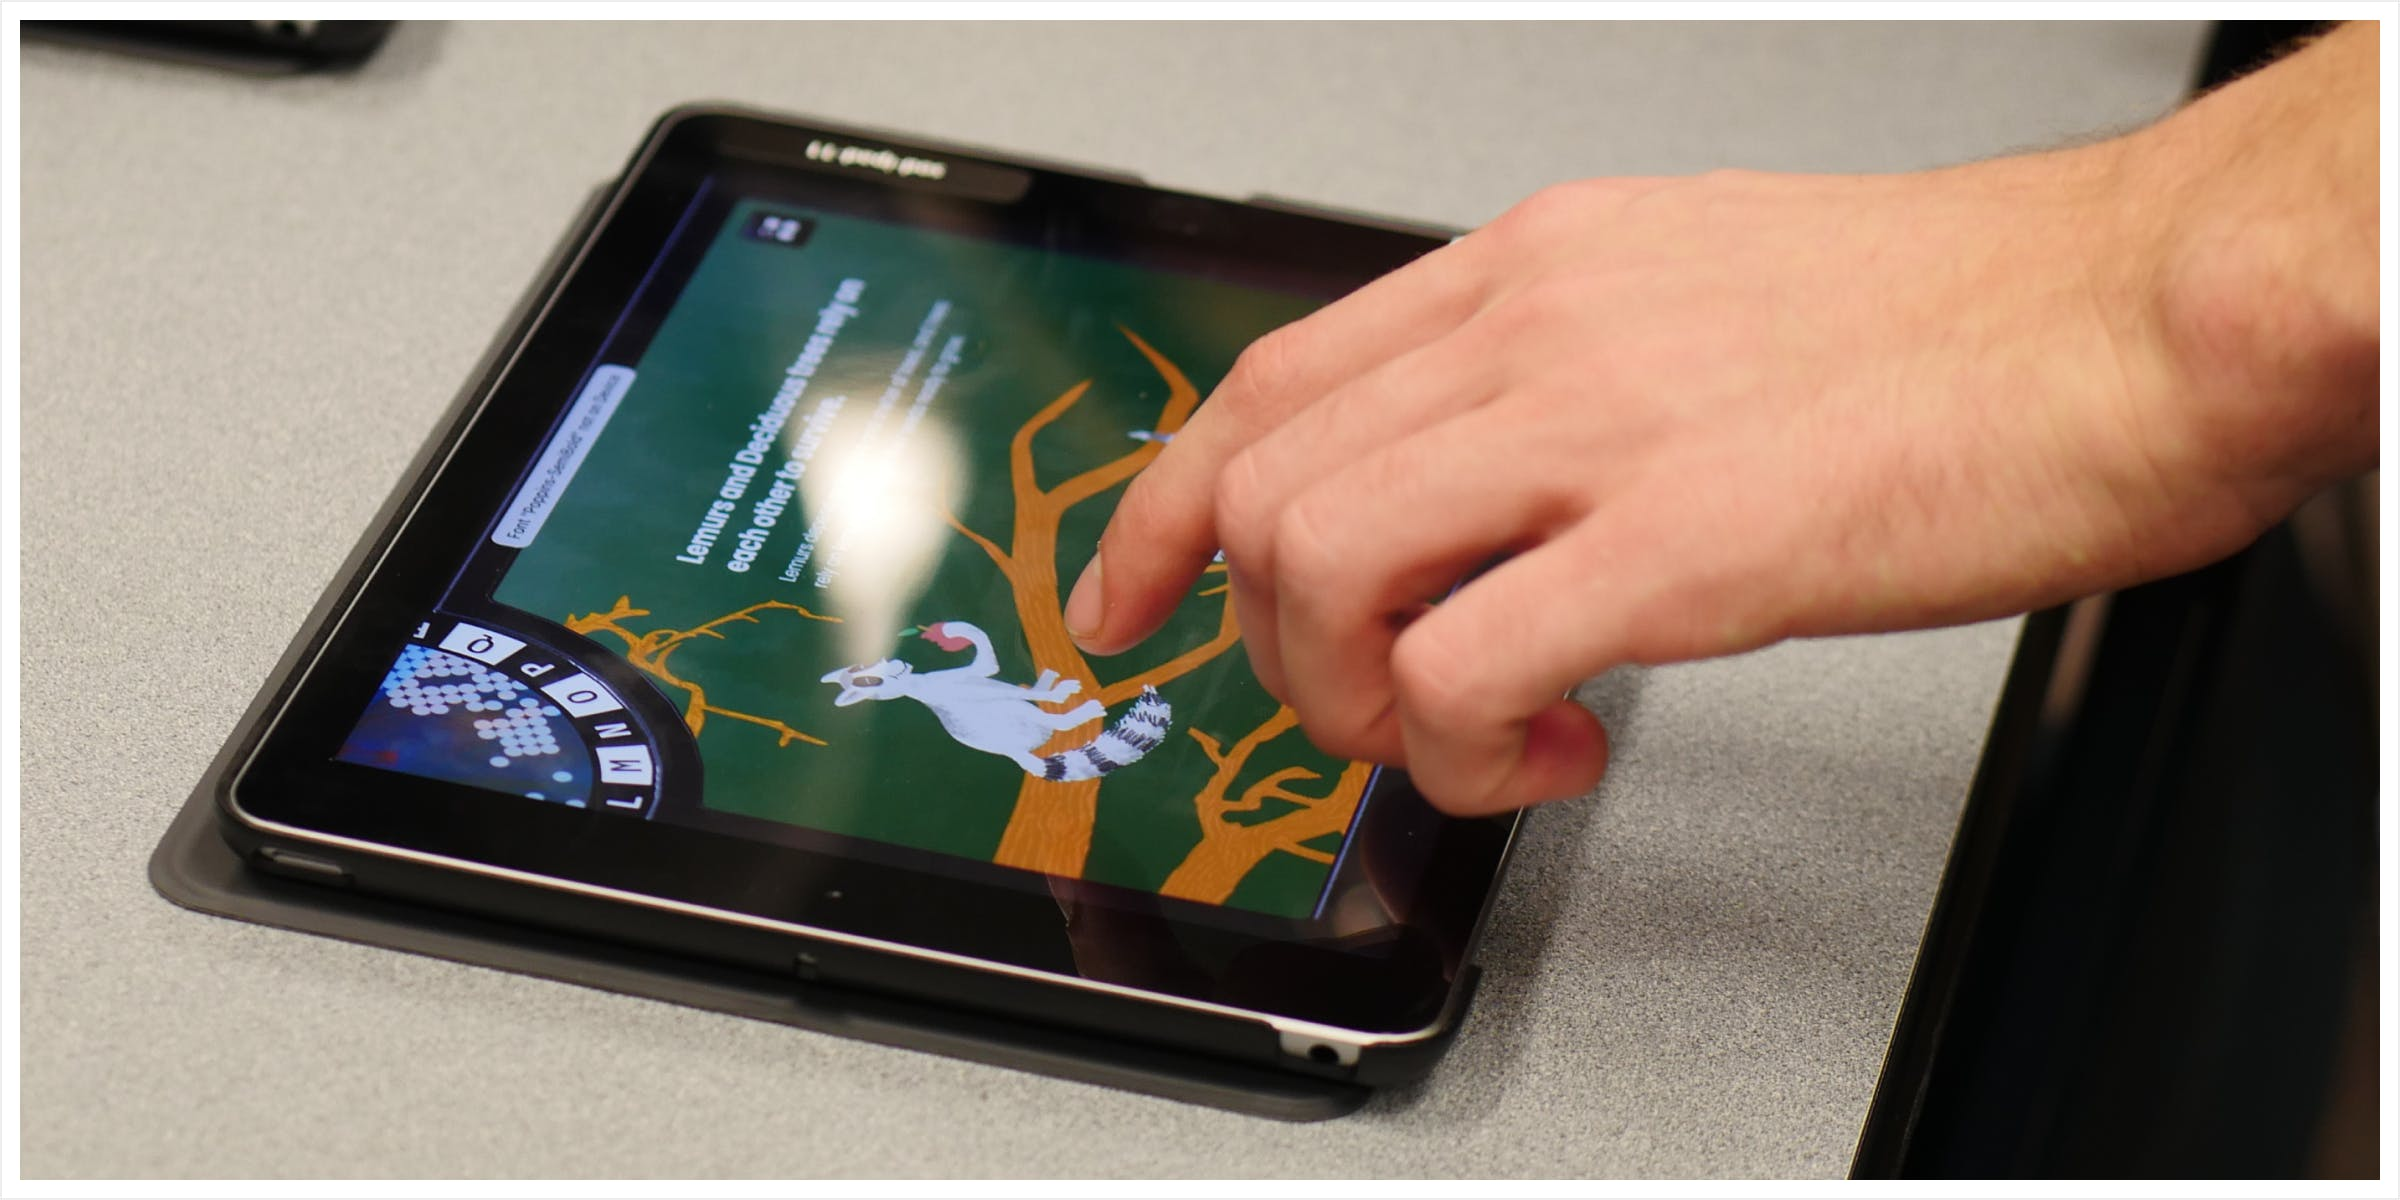 A hand touching an iPad with the interactions